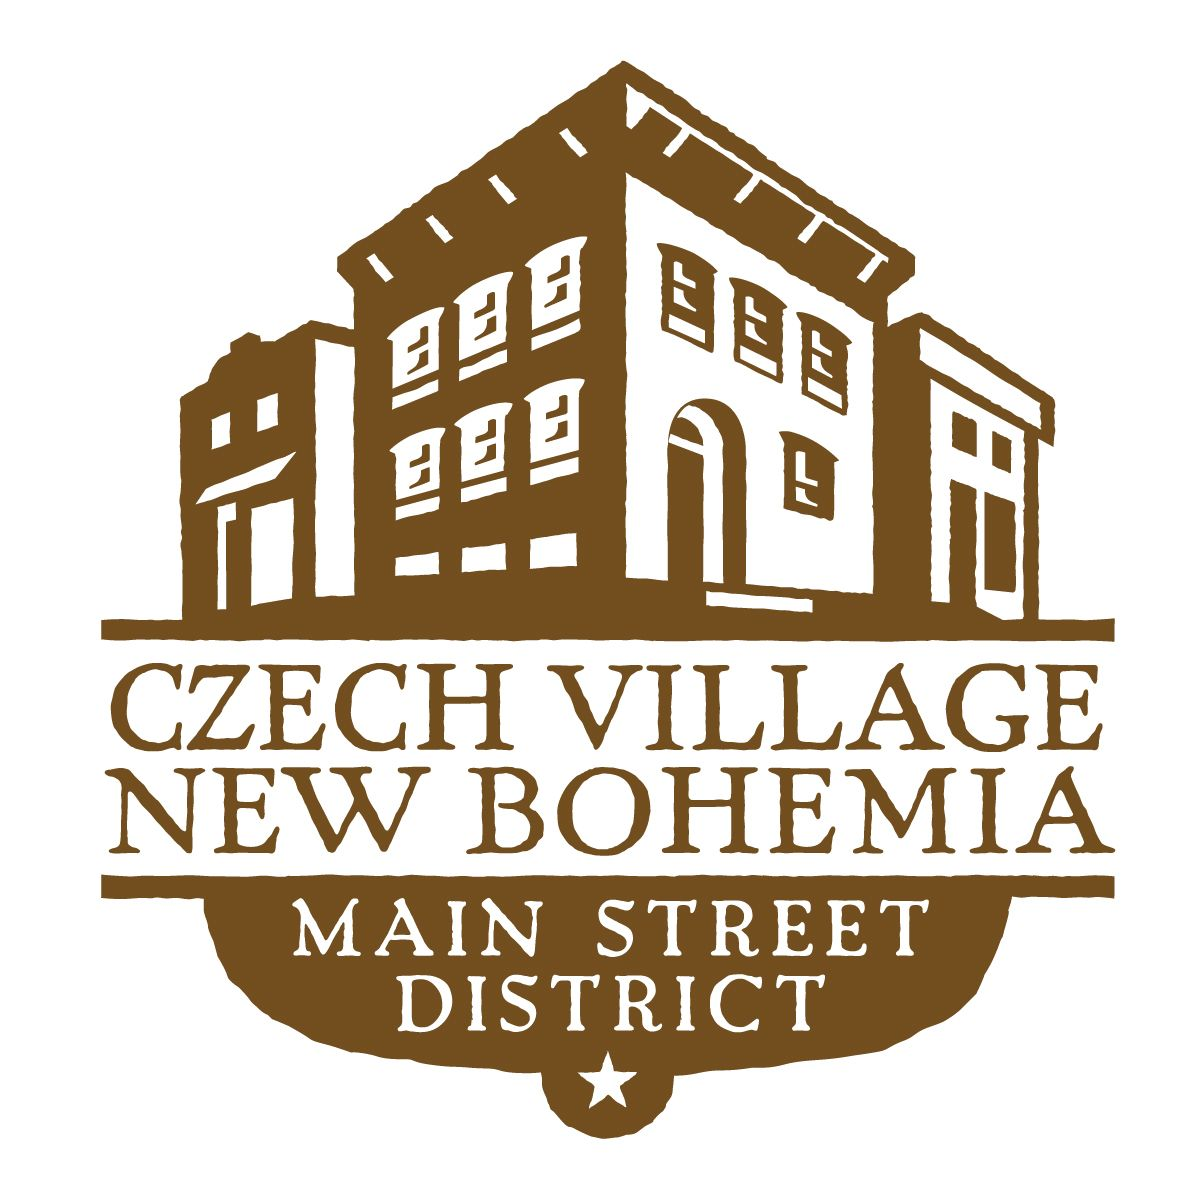 Czech Village/New Bohemia Main Street District Cedar